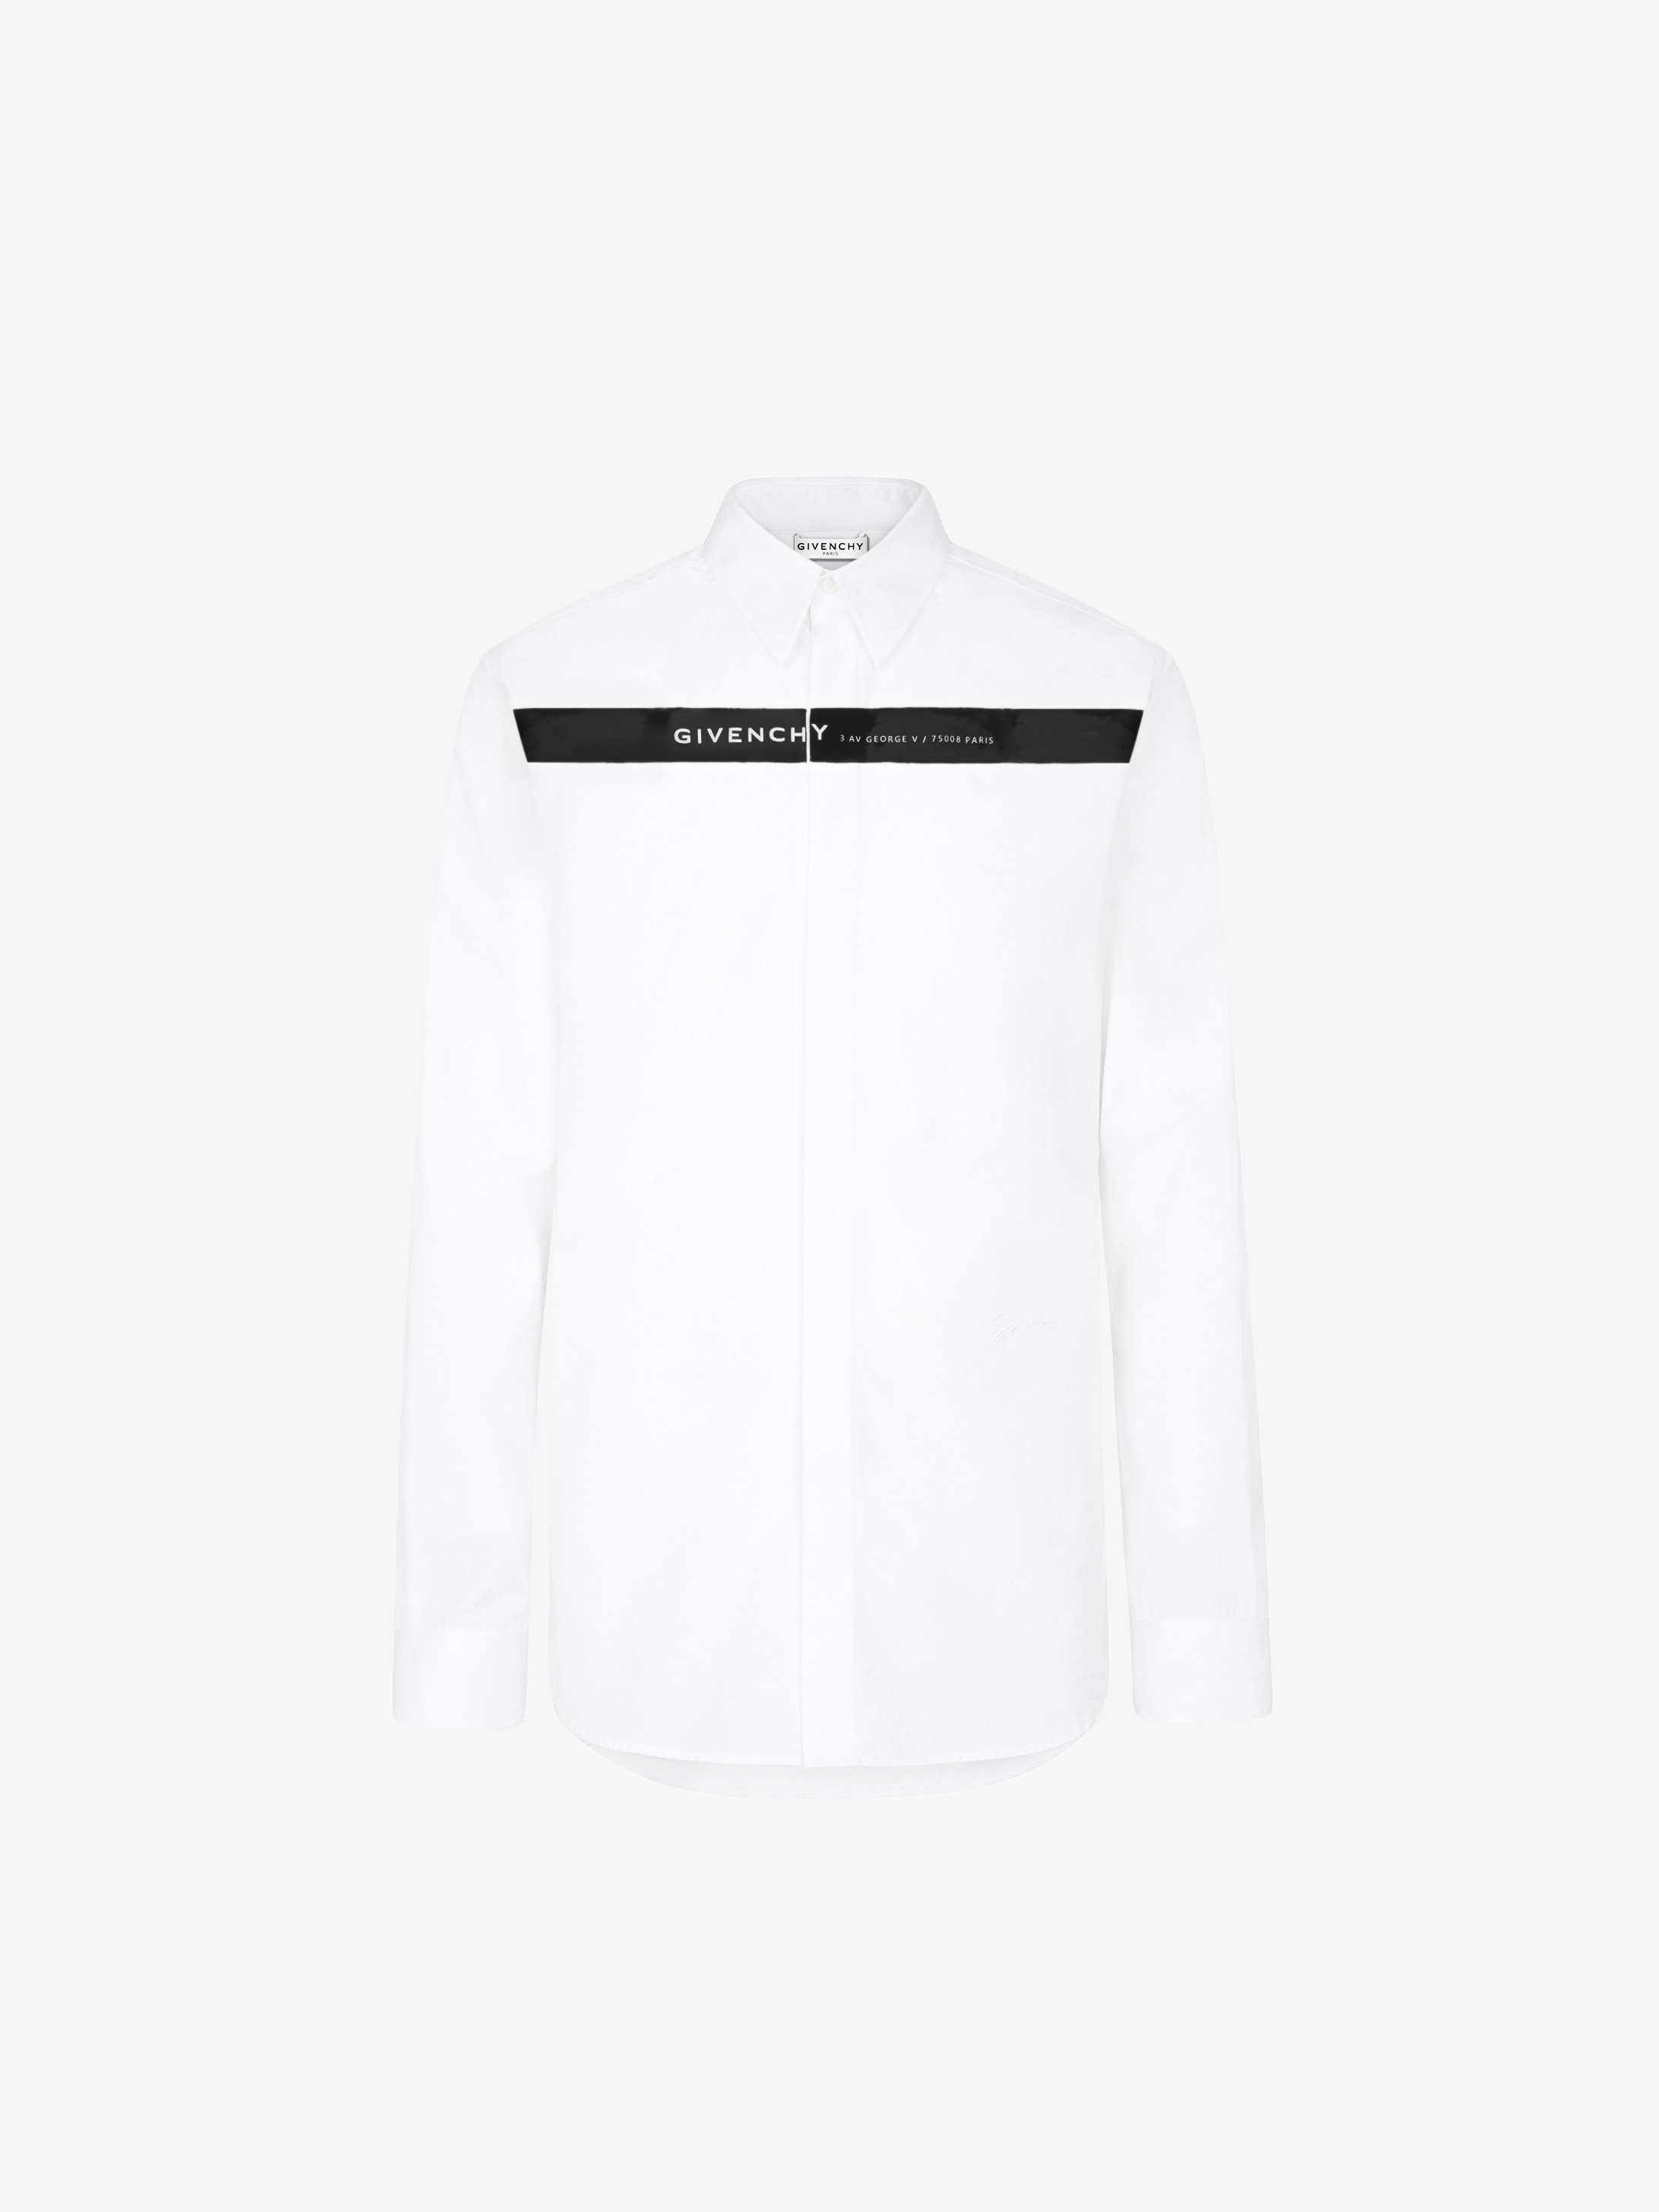 GIVENCHY shirt with band